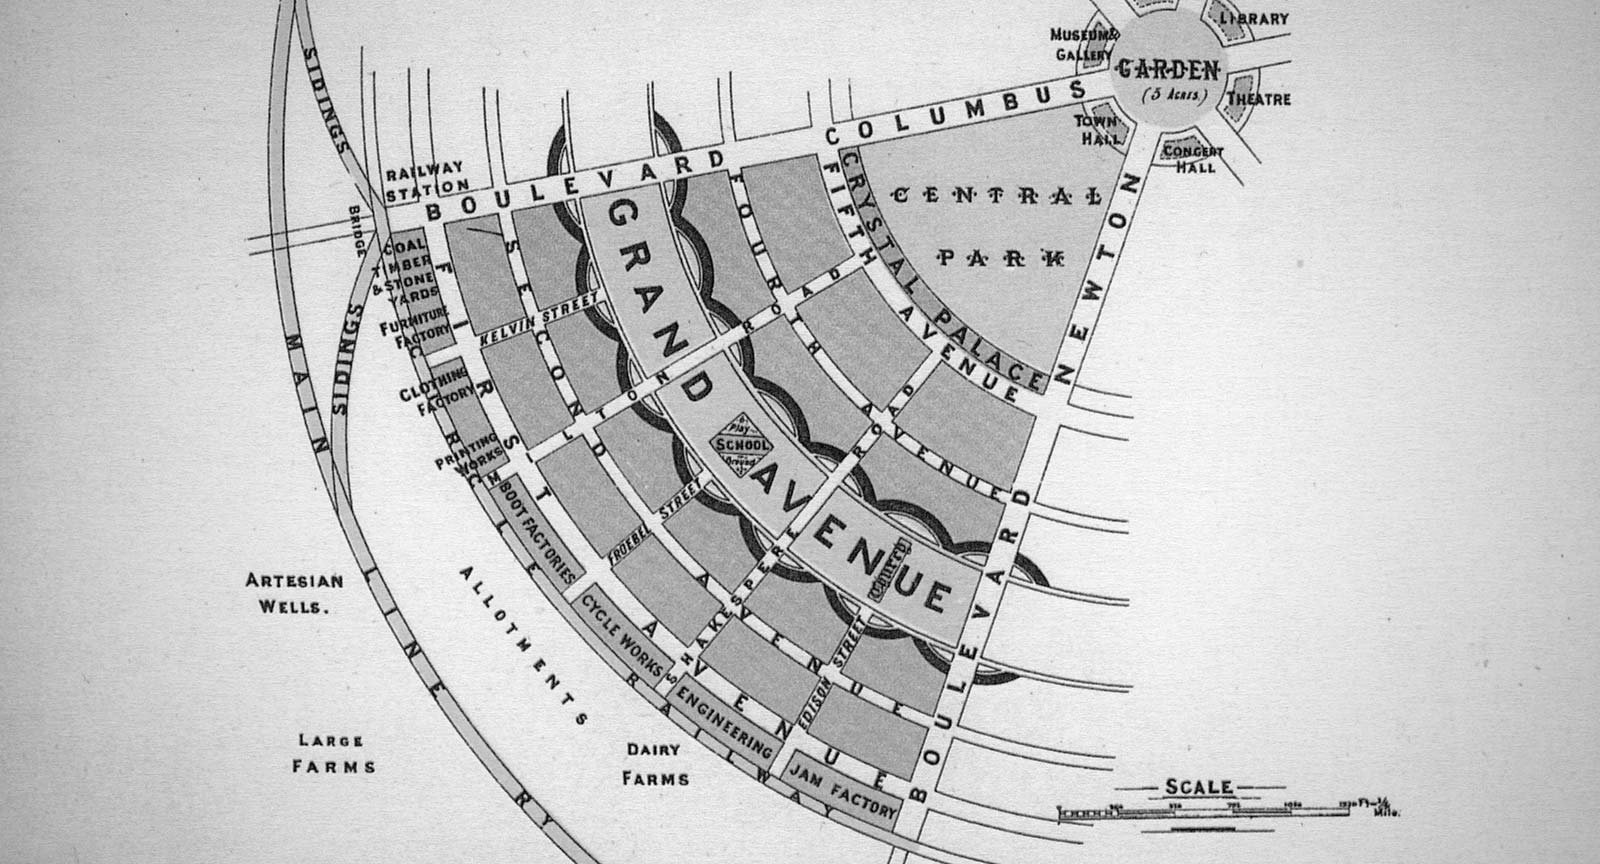 Old map of the Garden City urban concept